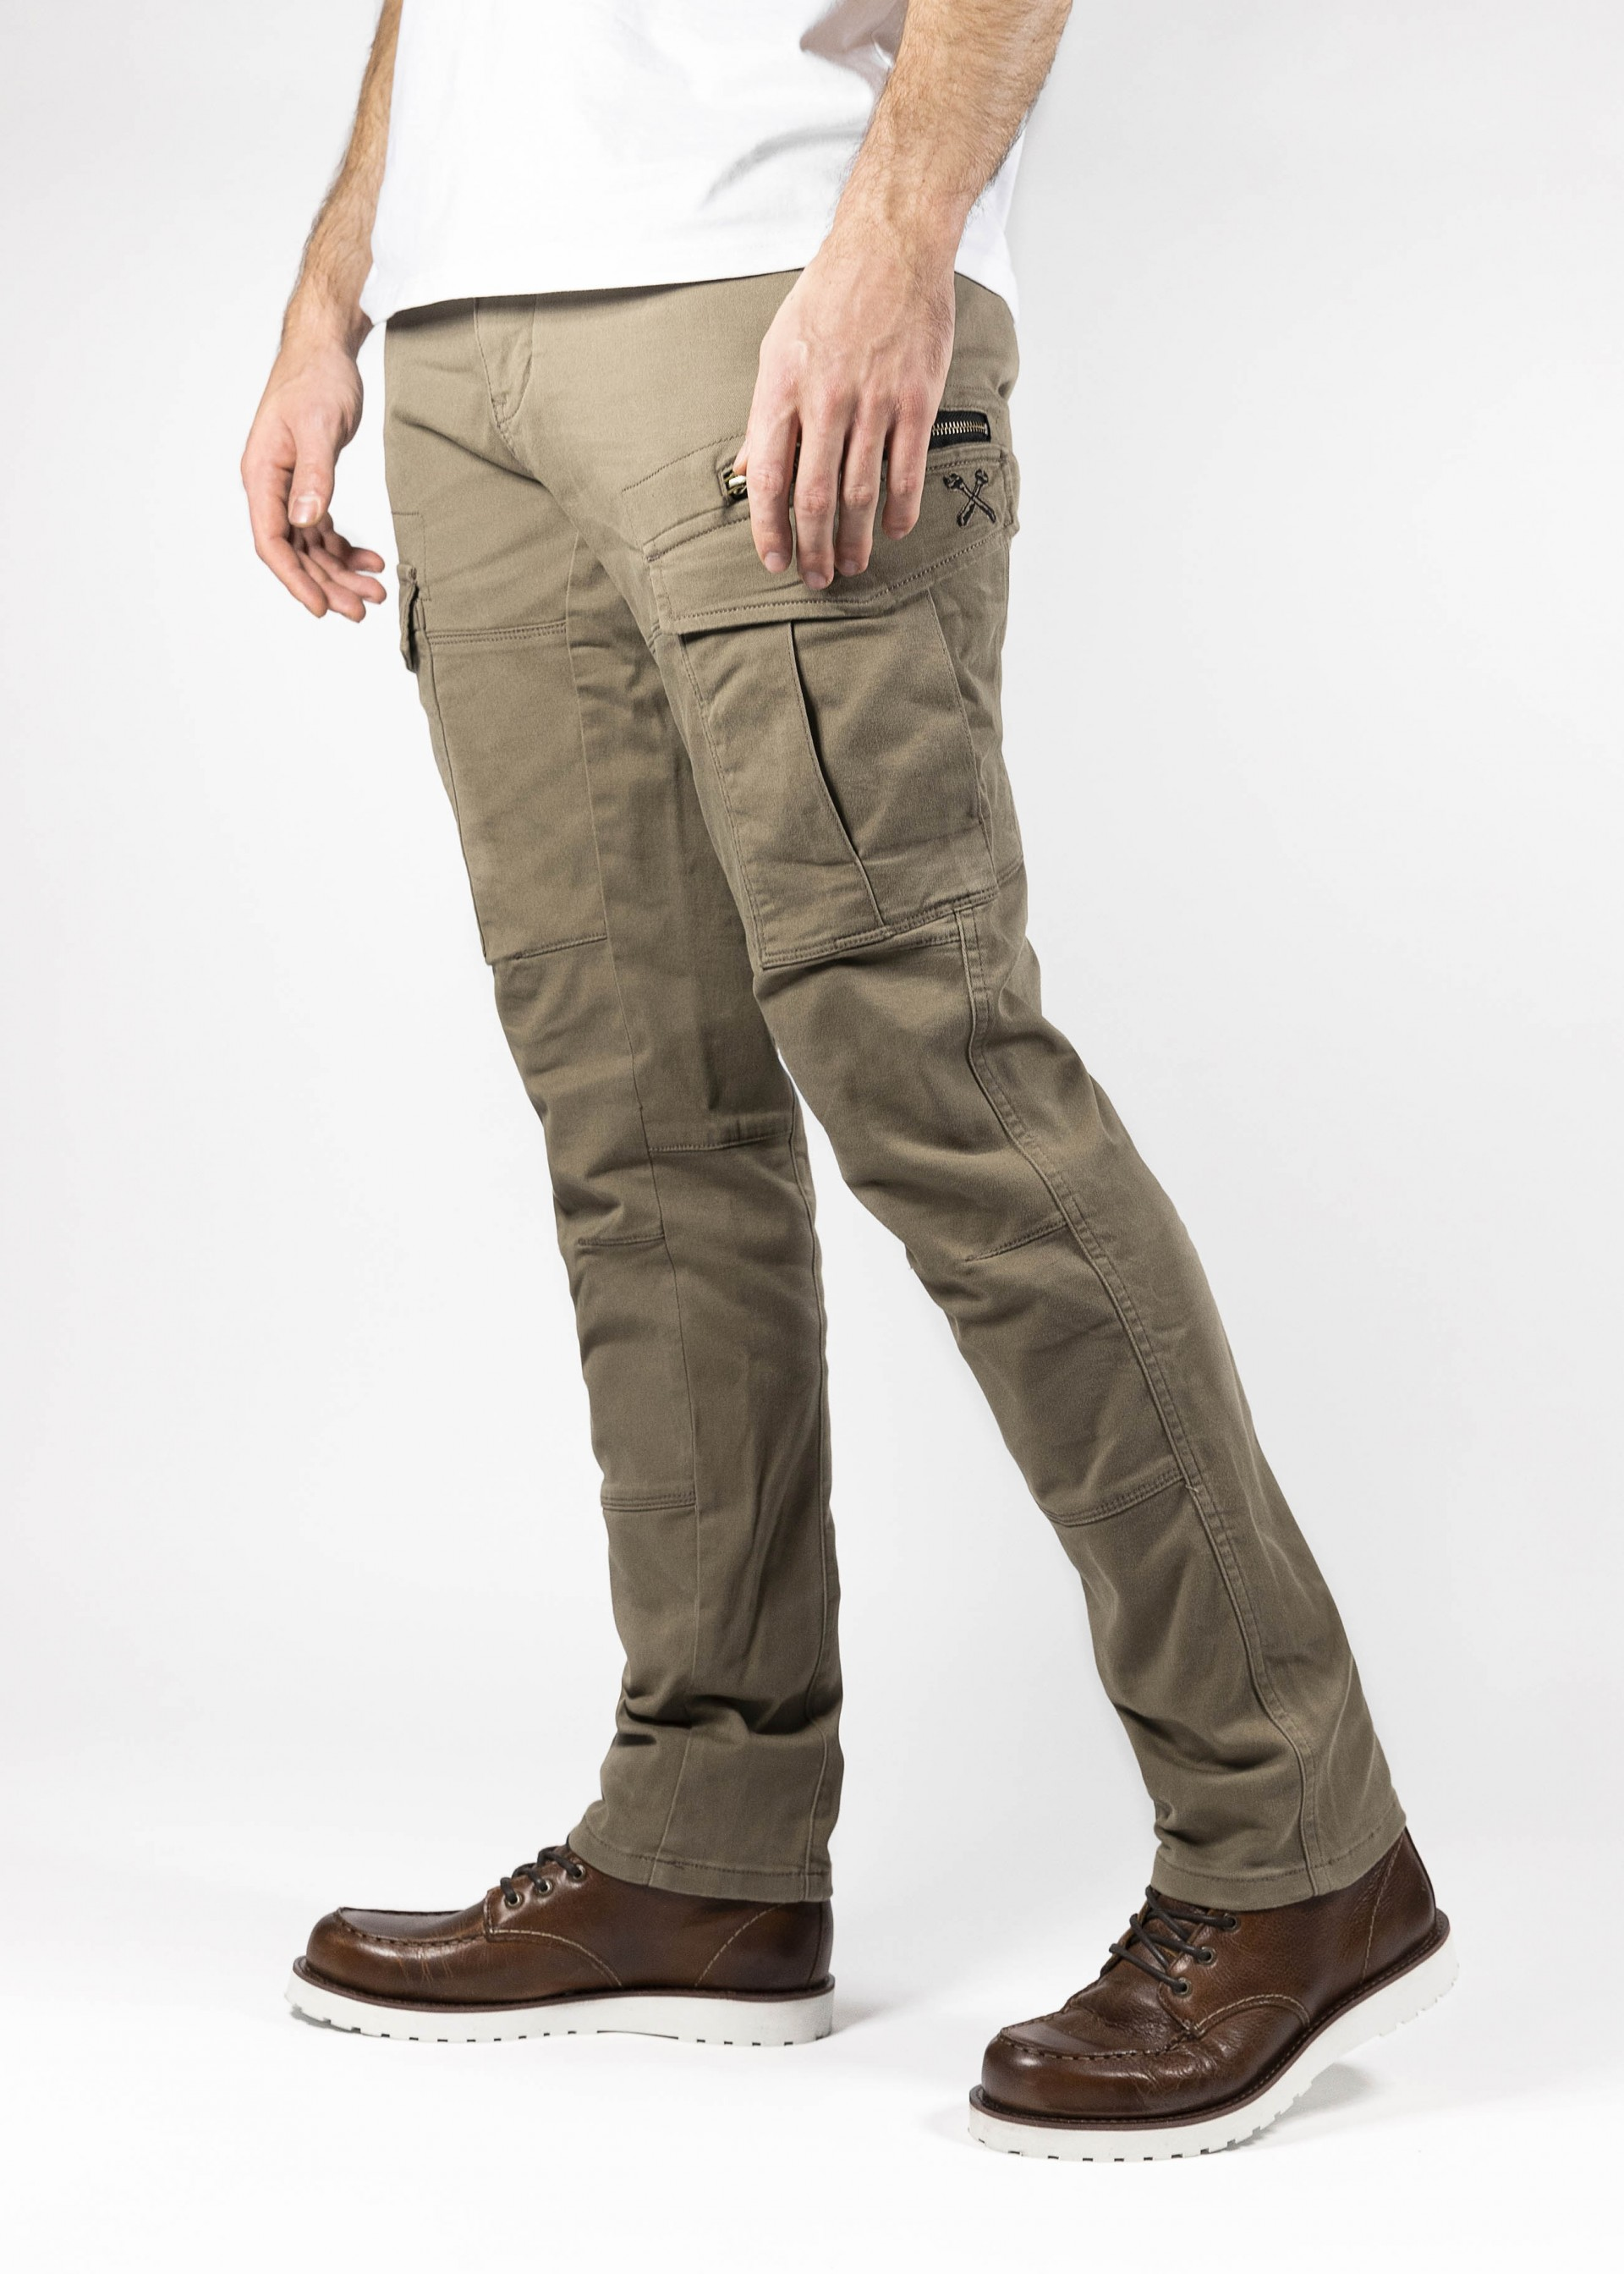 Khaki//TAN Force Riders Mens Motorcycle Cargo Trousers with Dupont/™ Kevlar/® Lining